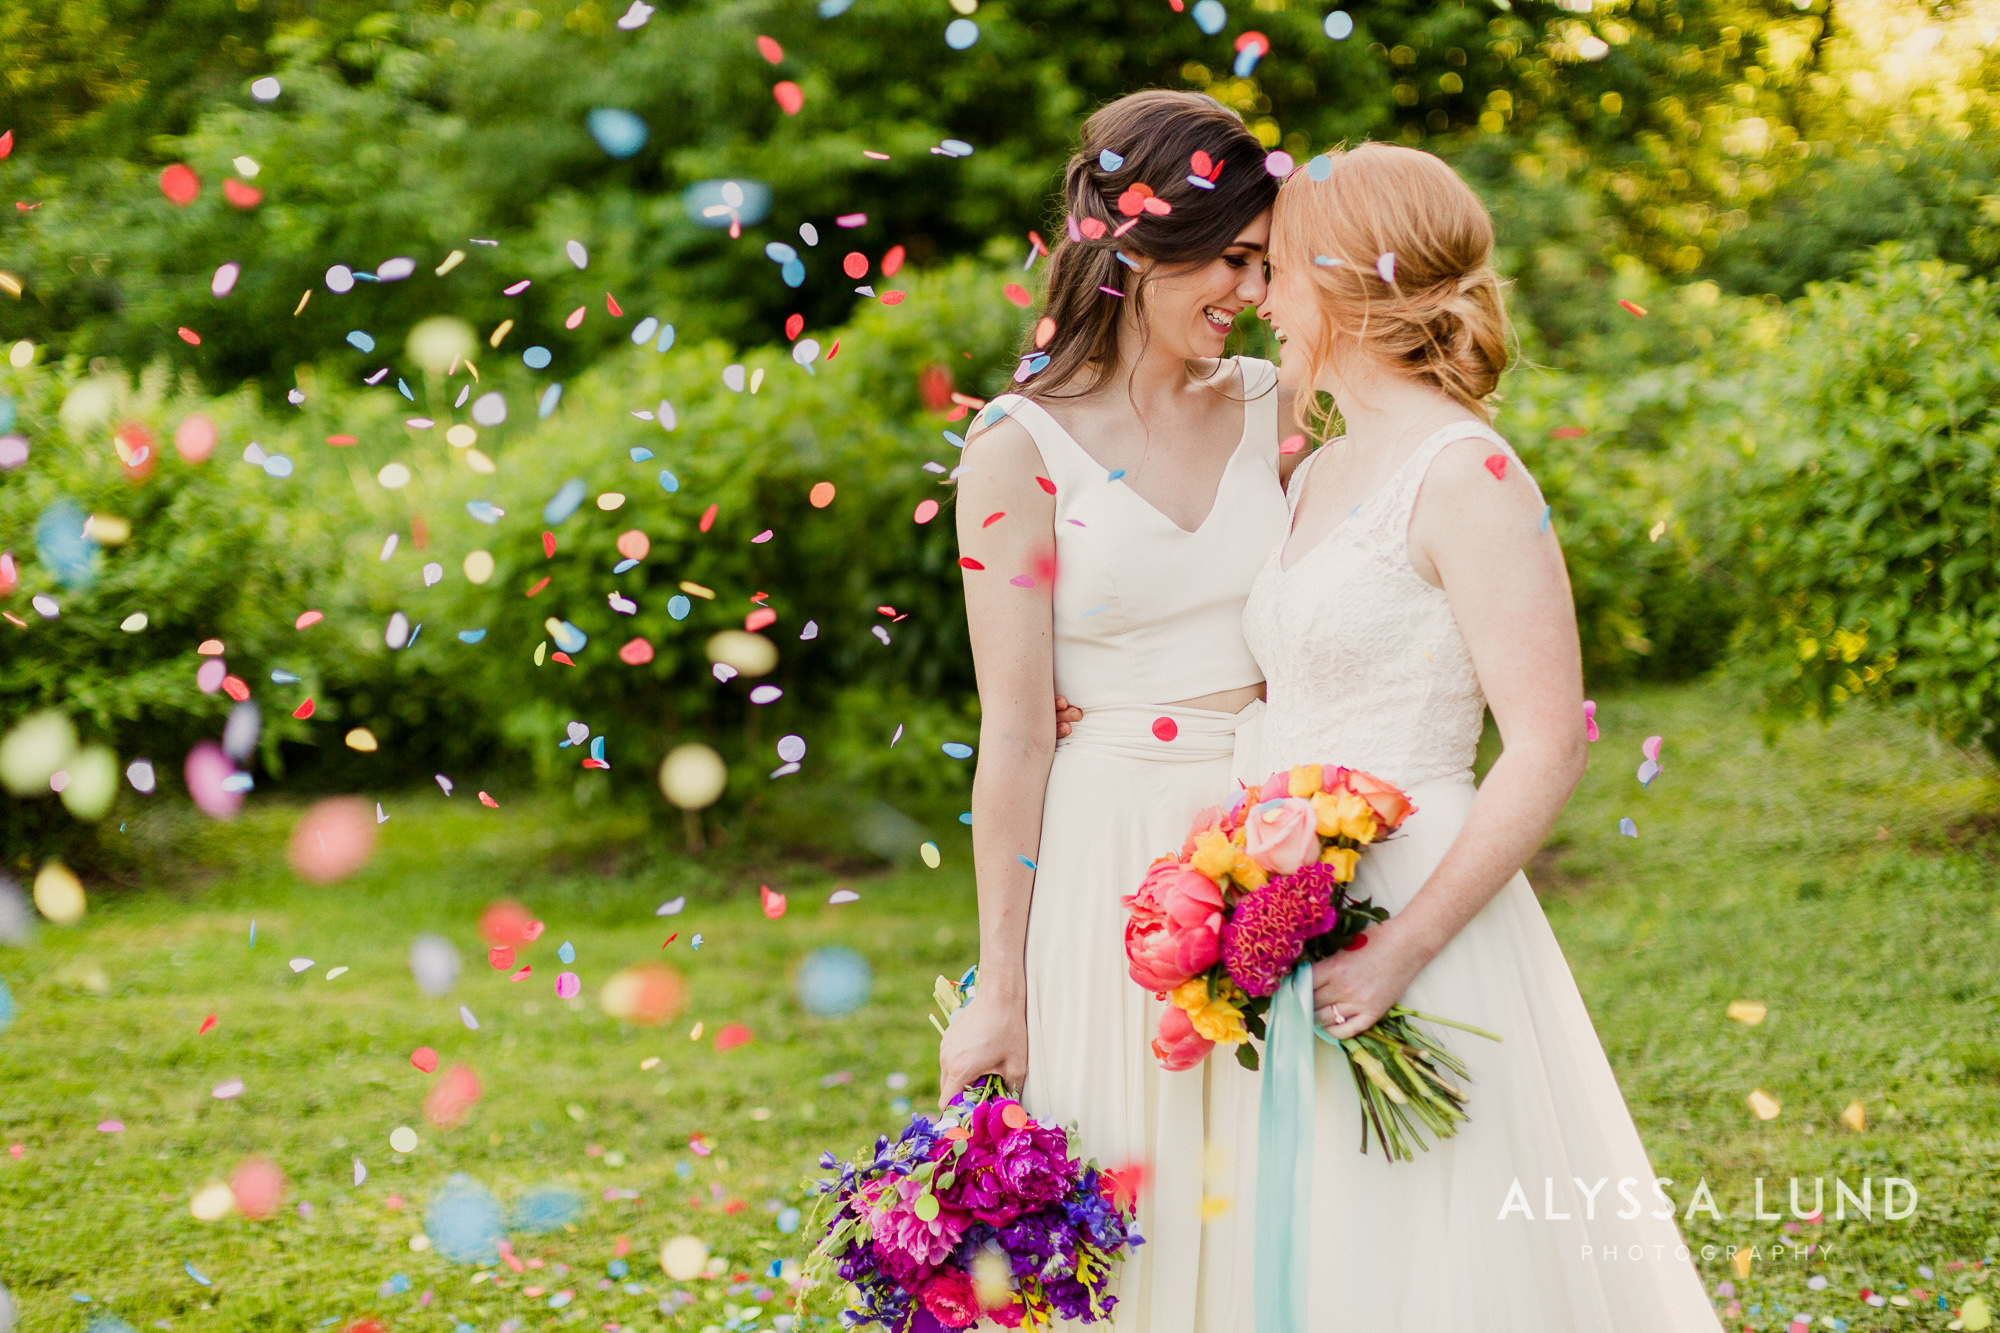 Queer wedding photography inspiration by Alyssa Lund Photography-19.jpg